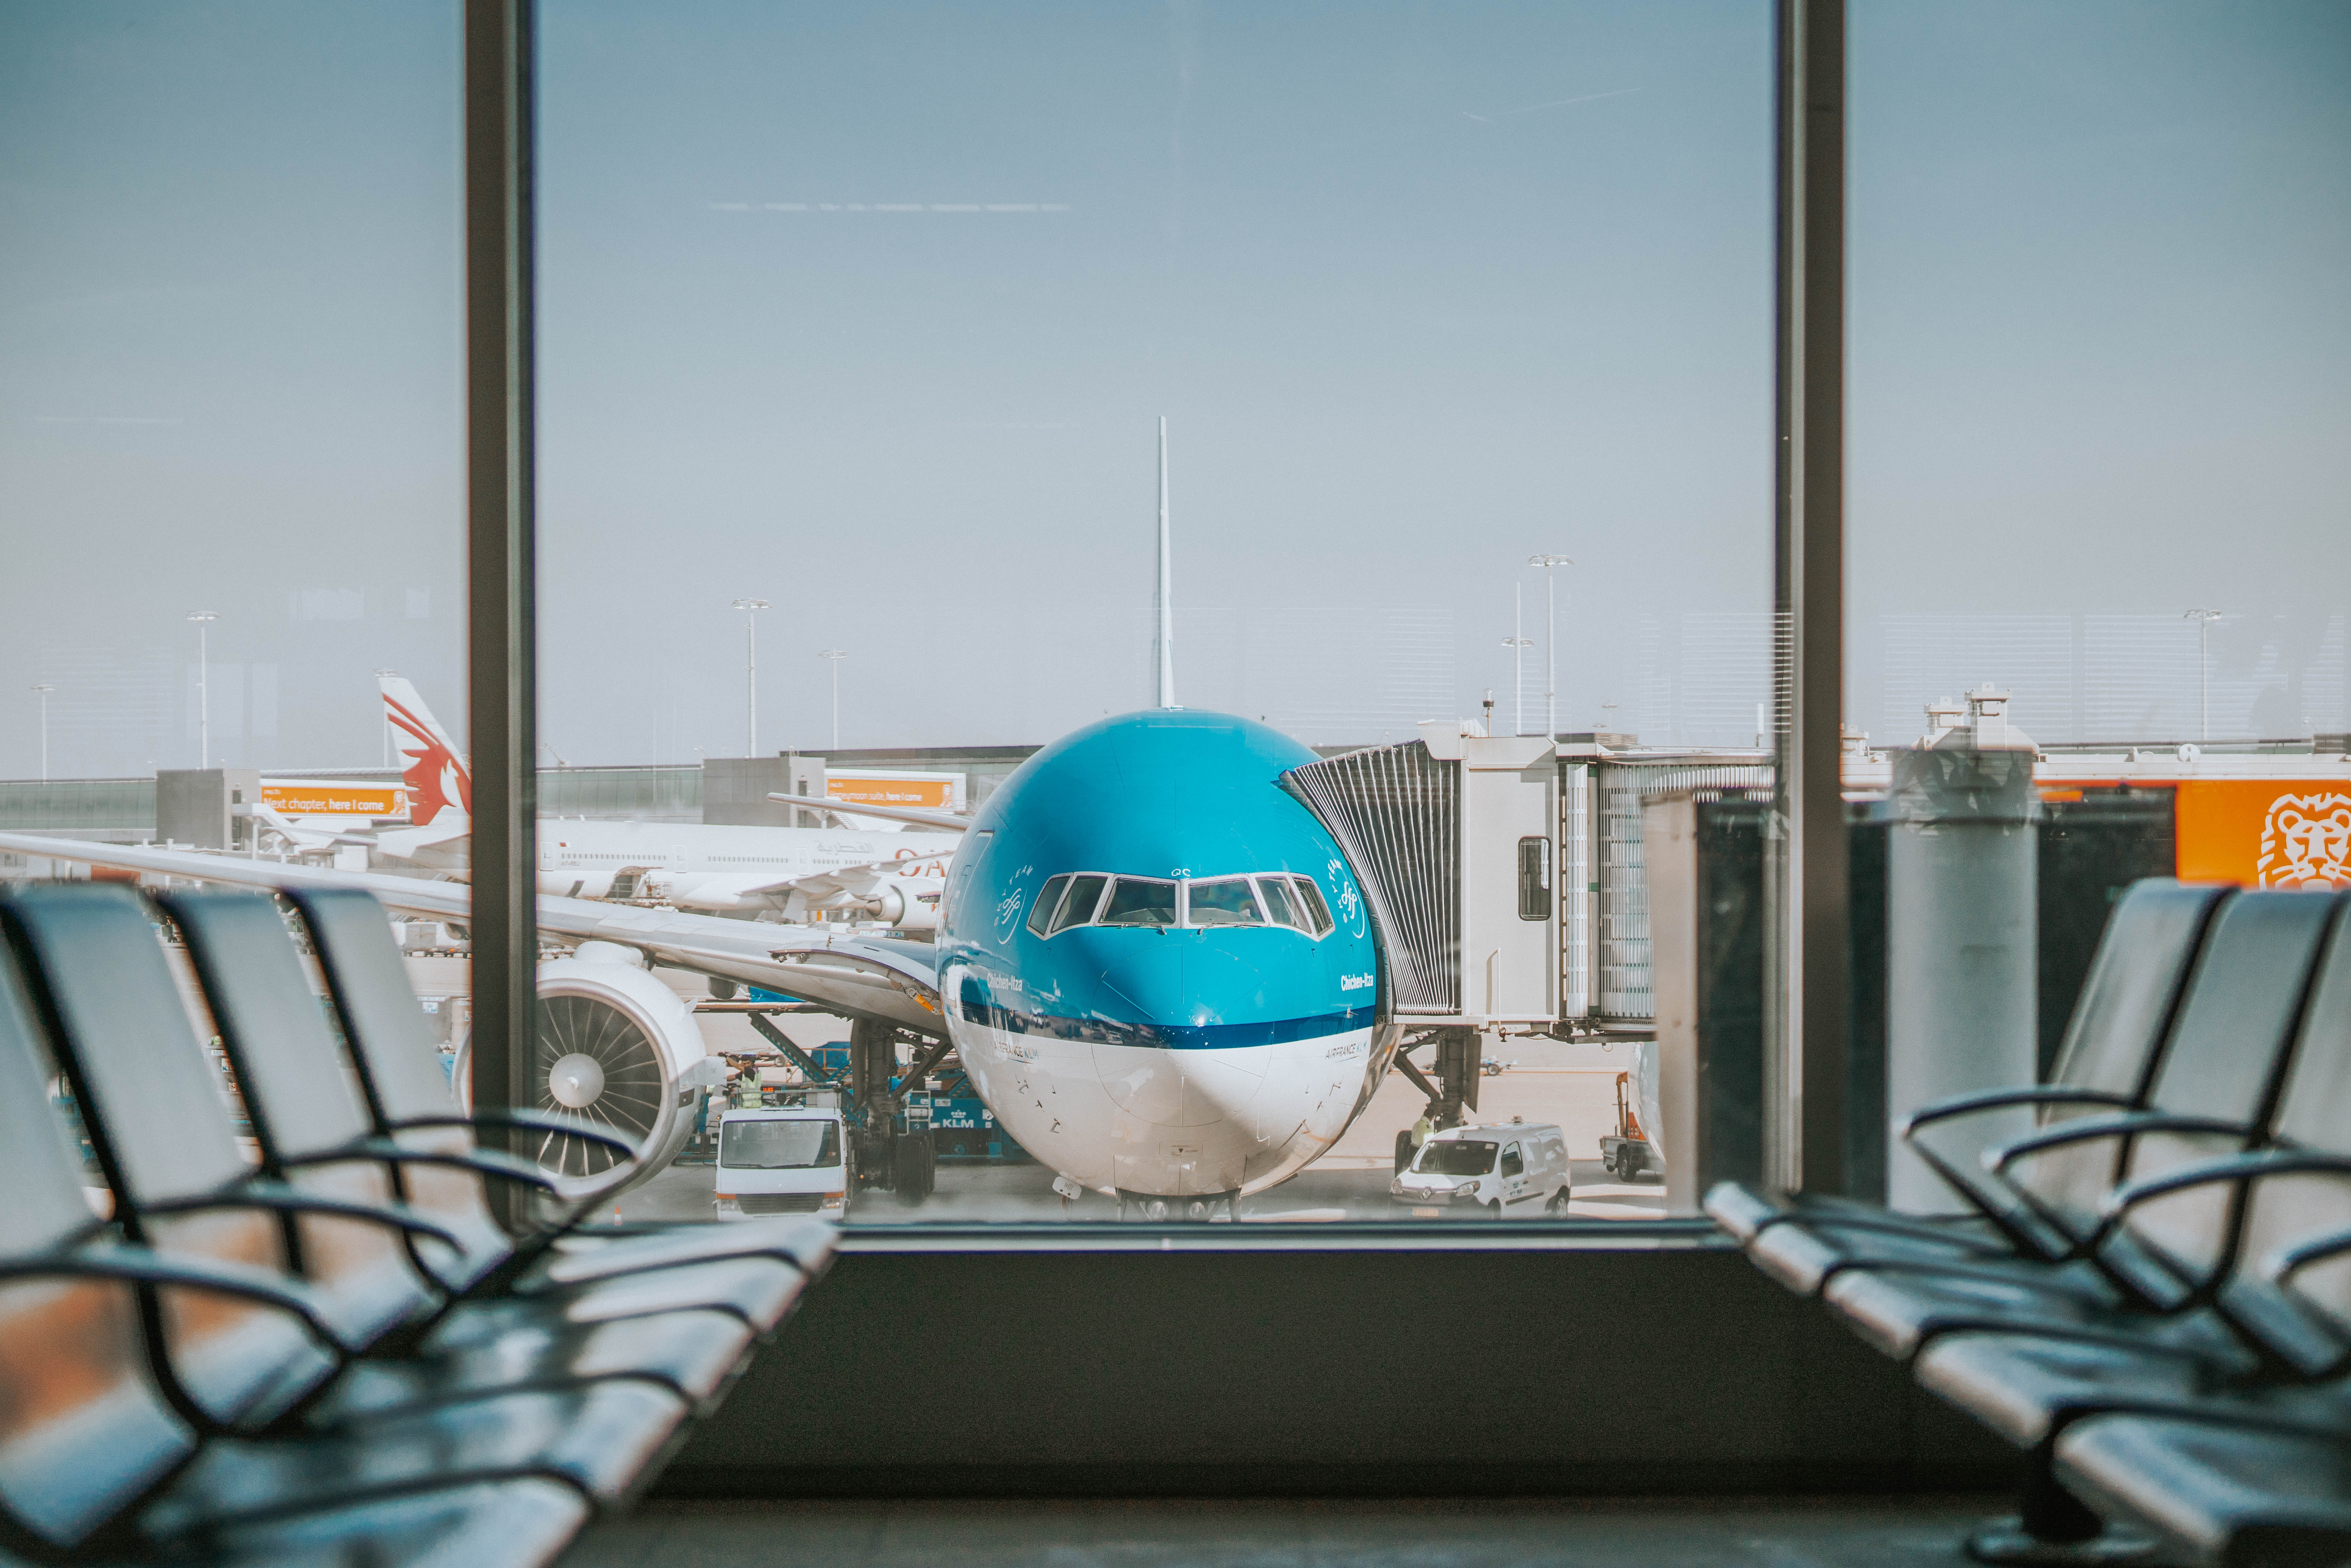 Airplane at empty gate; image by Oskar Kadaksoo, via Unsplash.com.